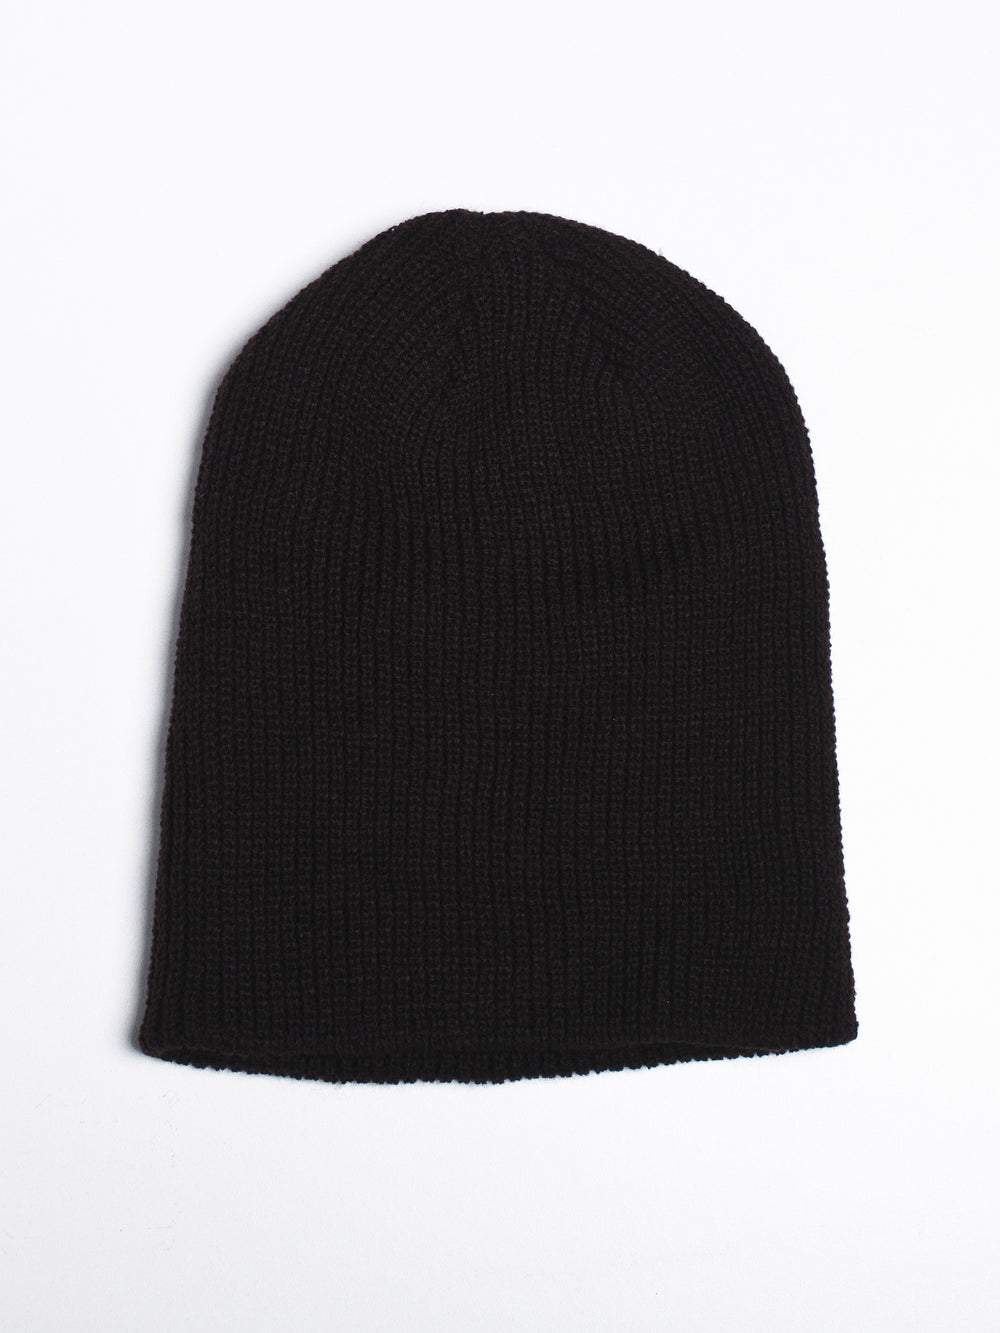 CLASSIC SOLID BEANIE BURGANDY - CLEARANCE